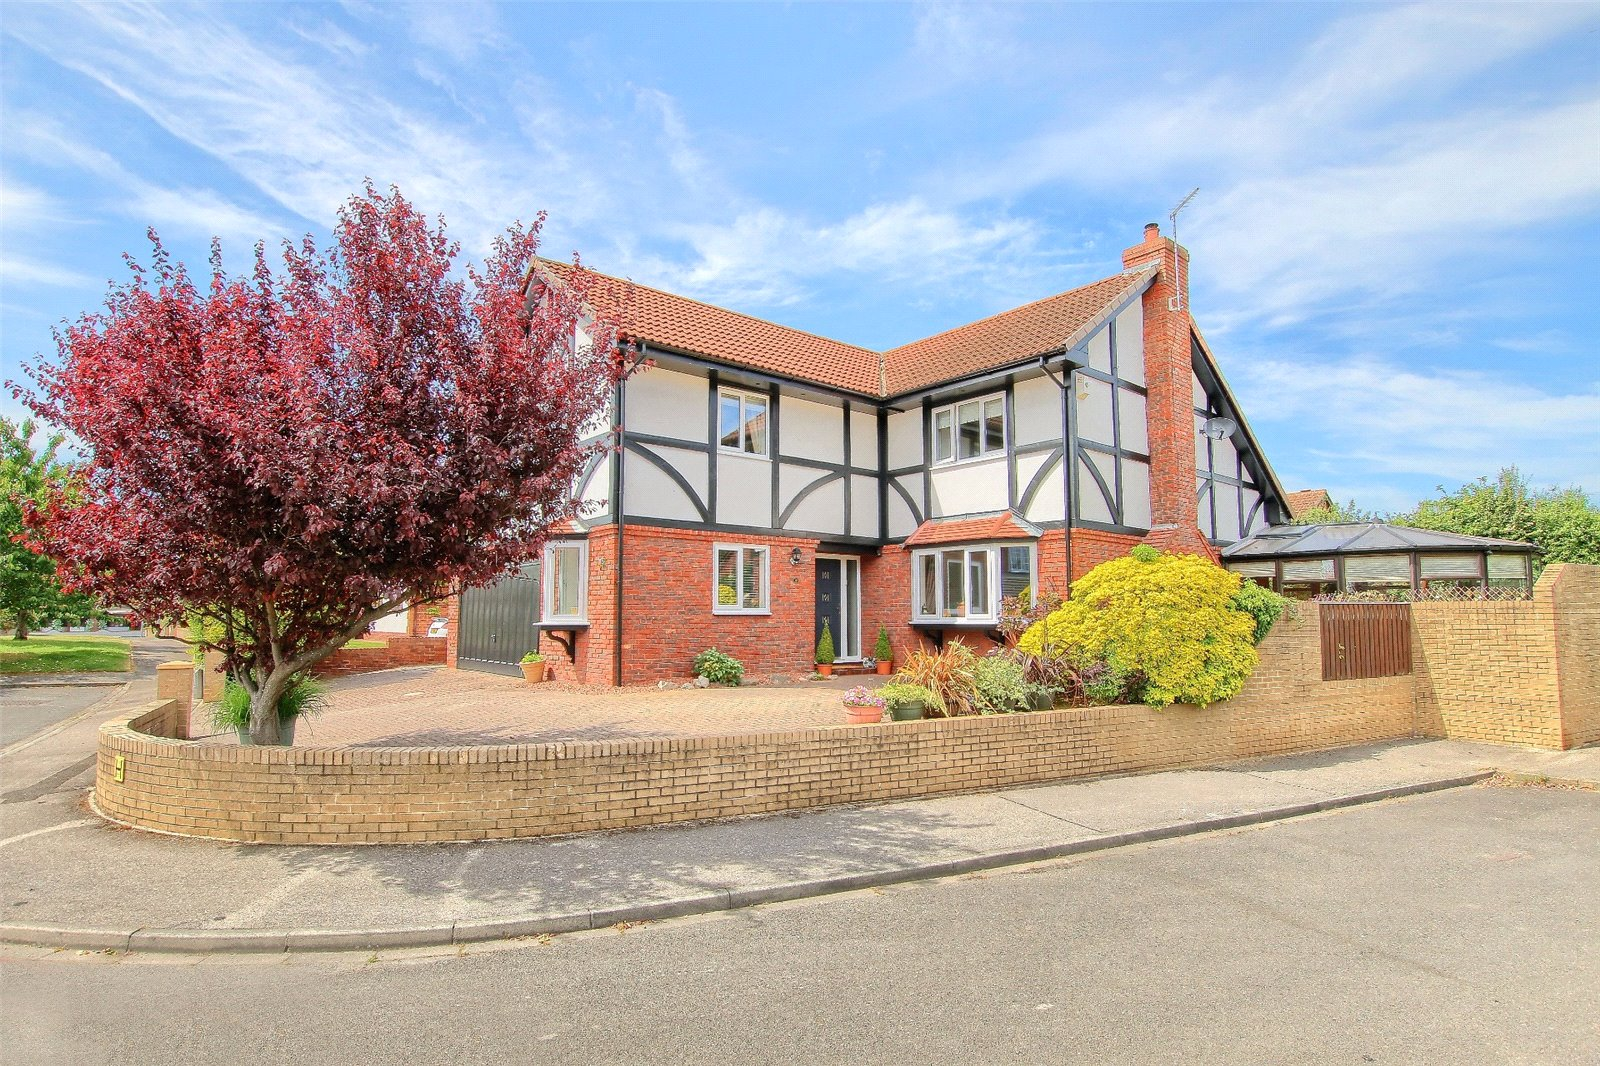 5 bed house for sale in Chalfield Close, Ingleby Barwick 1